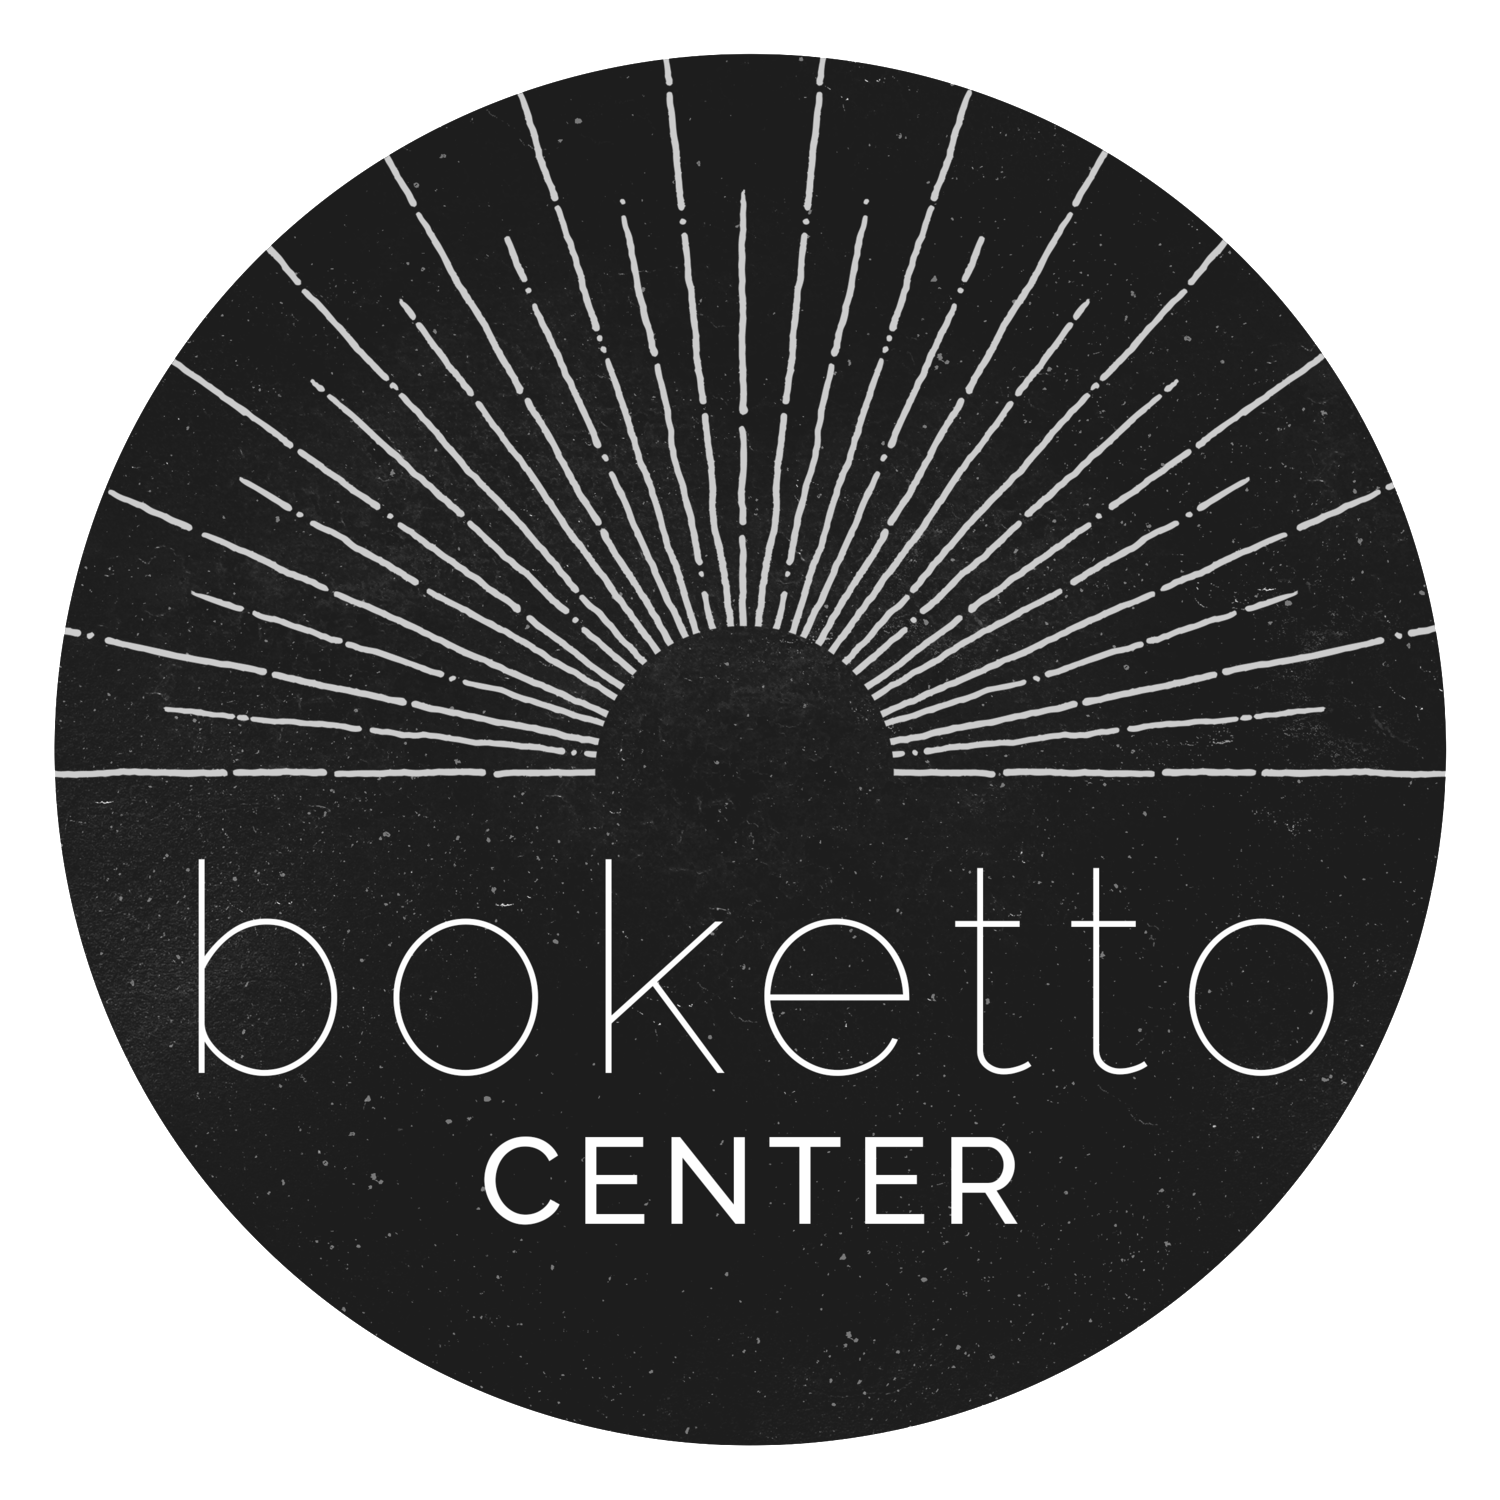 Boketto Center